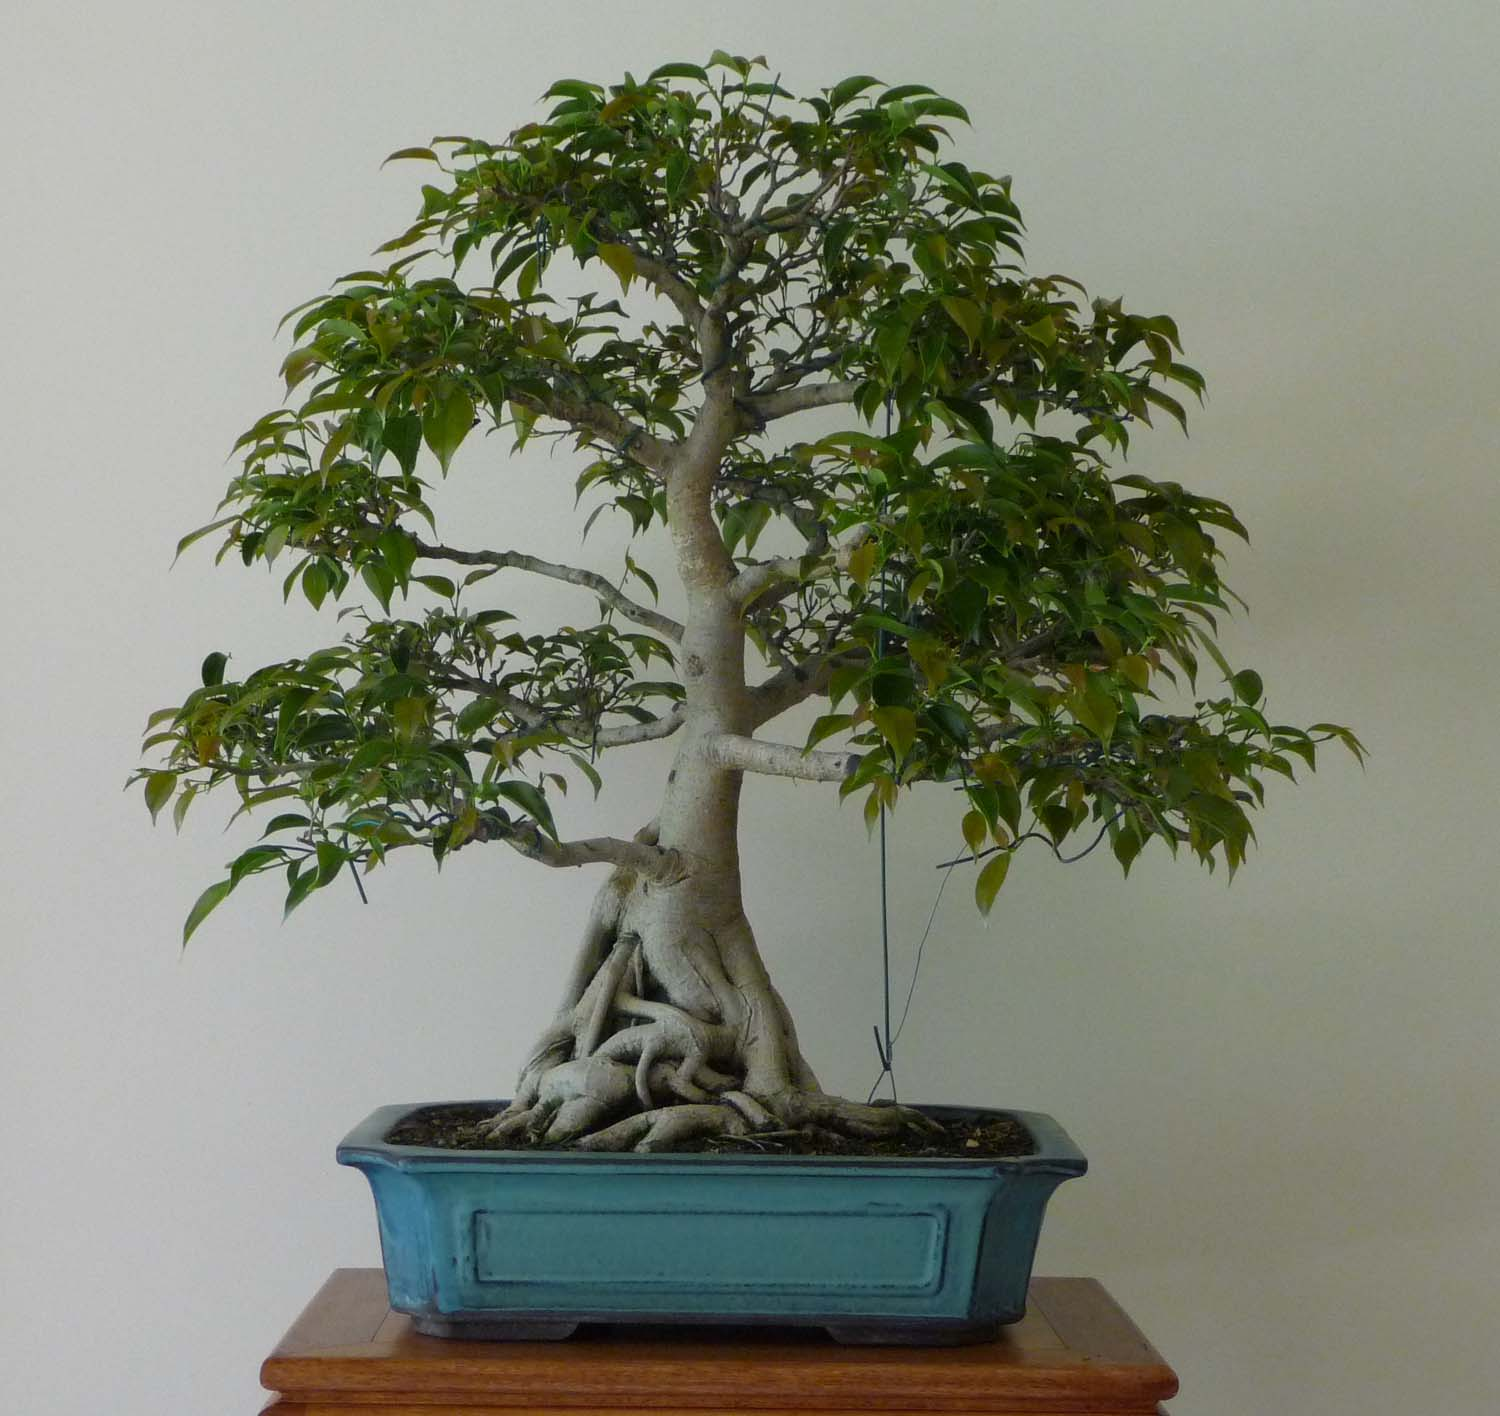 Bonsai Amp Pottery Post 42 Ficus Root Pruning